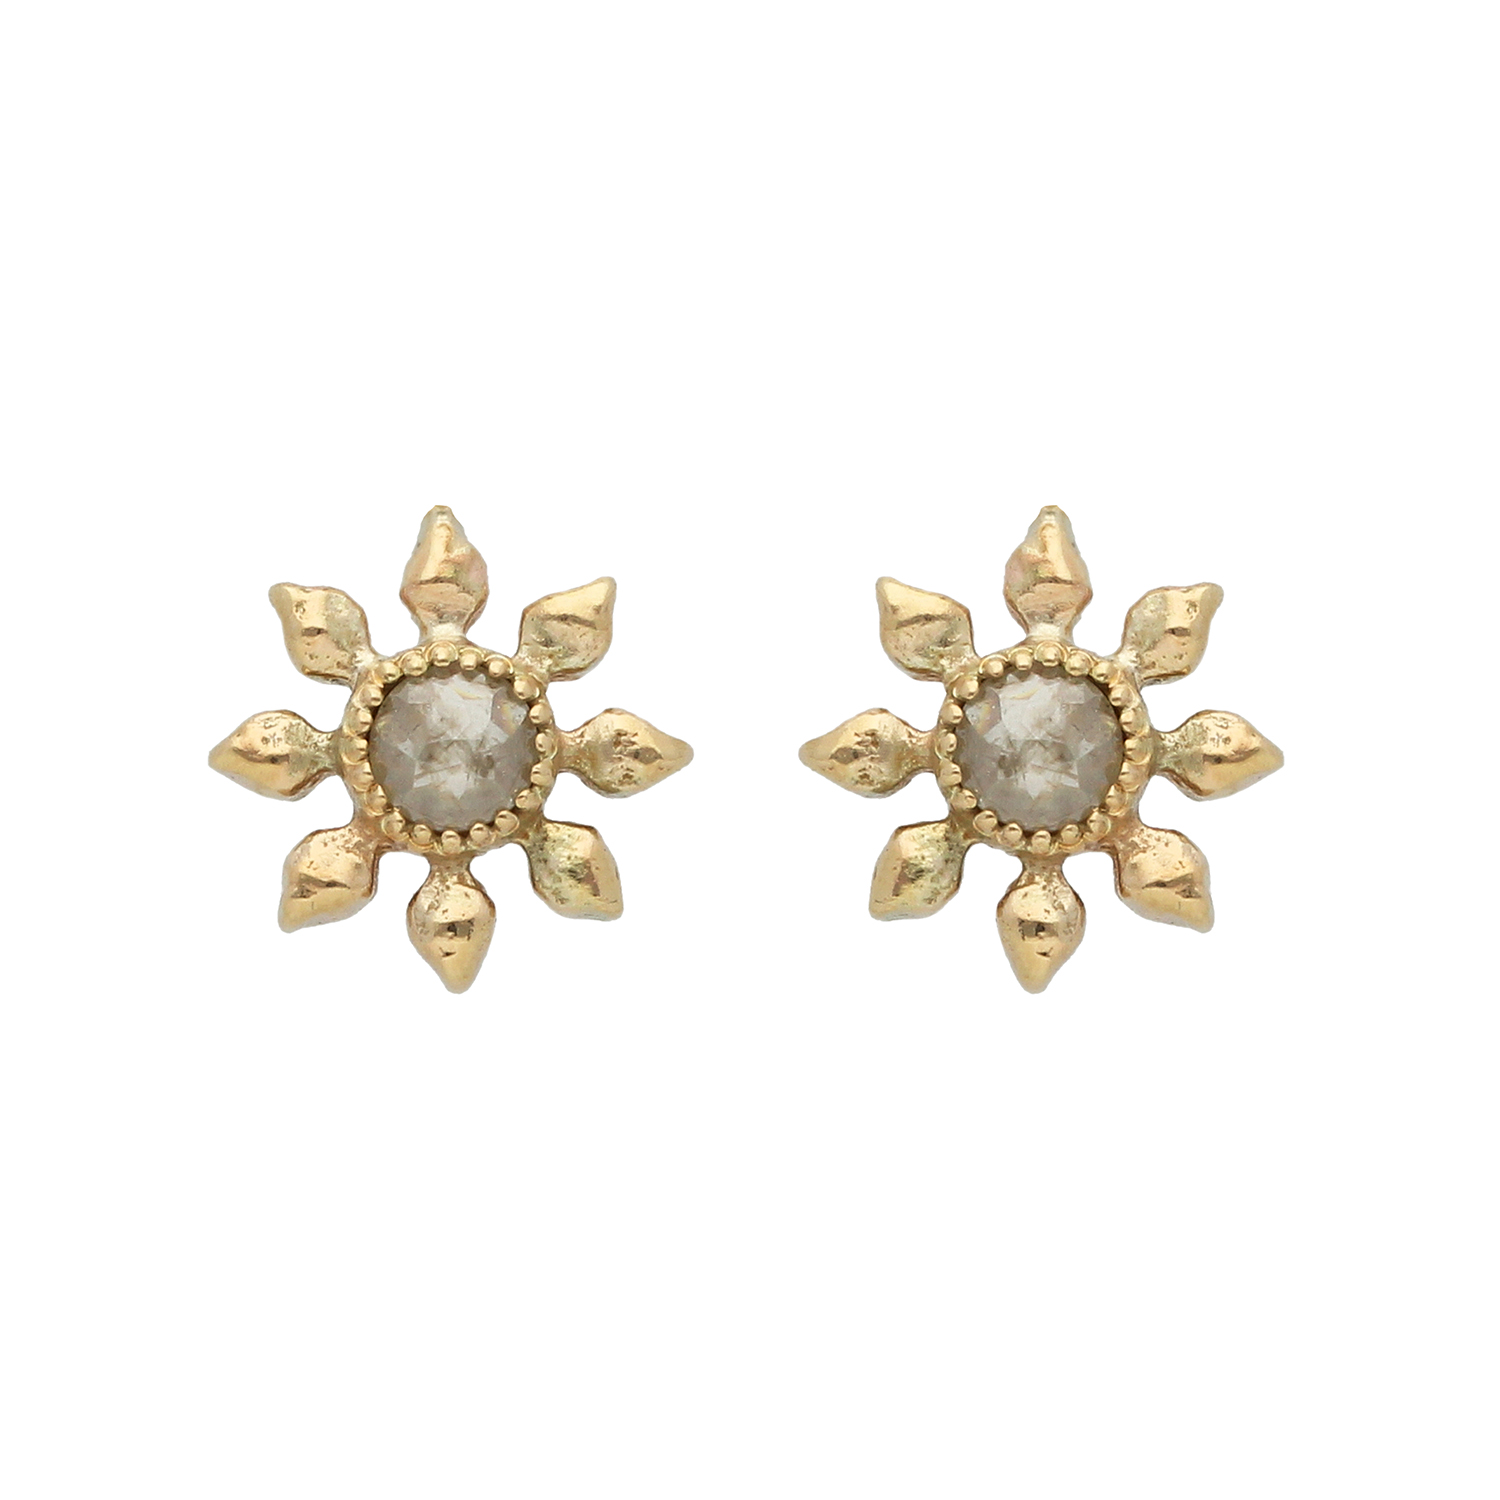 Natalie Perry Jewellery, Diamond Flower Earrings